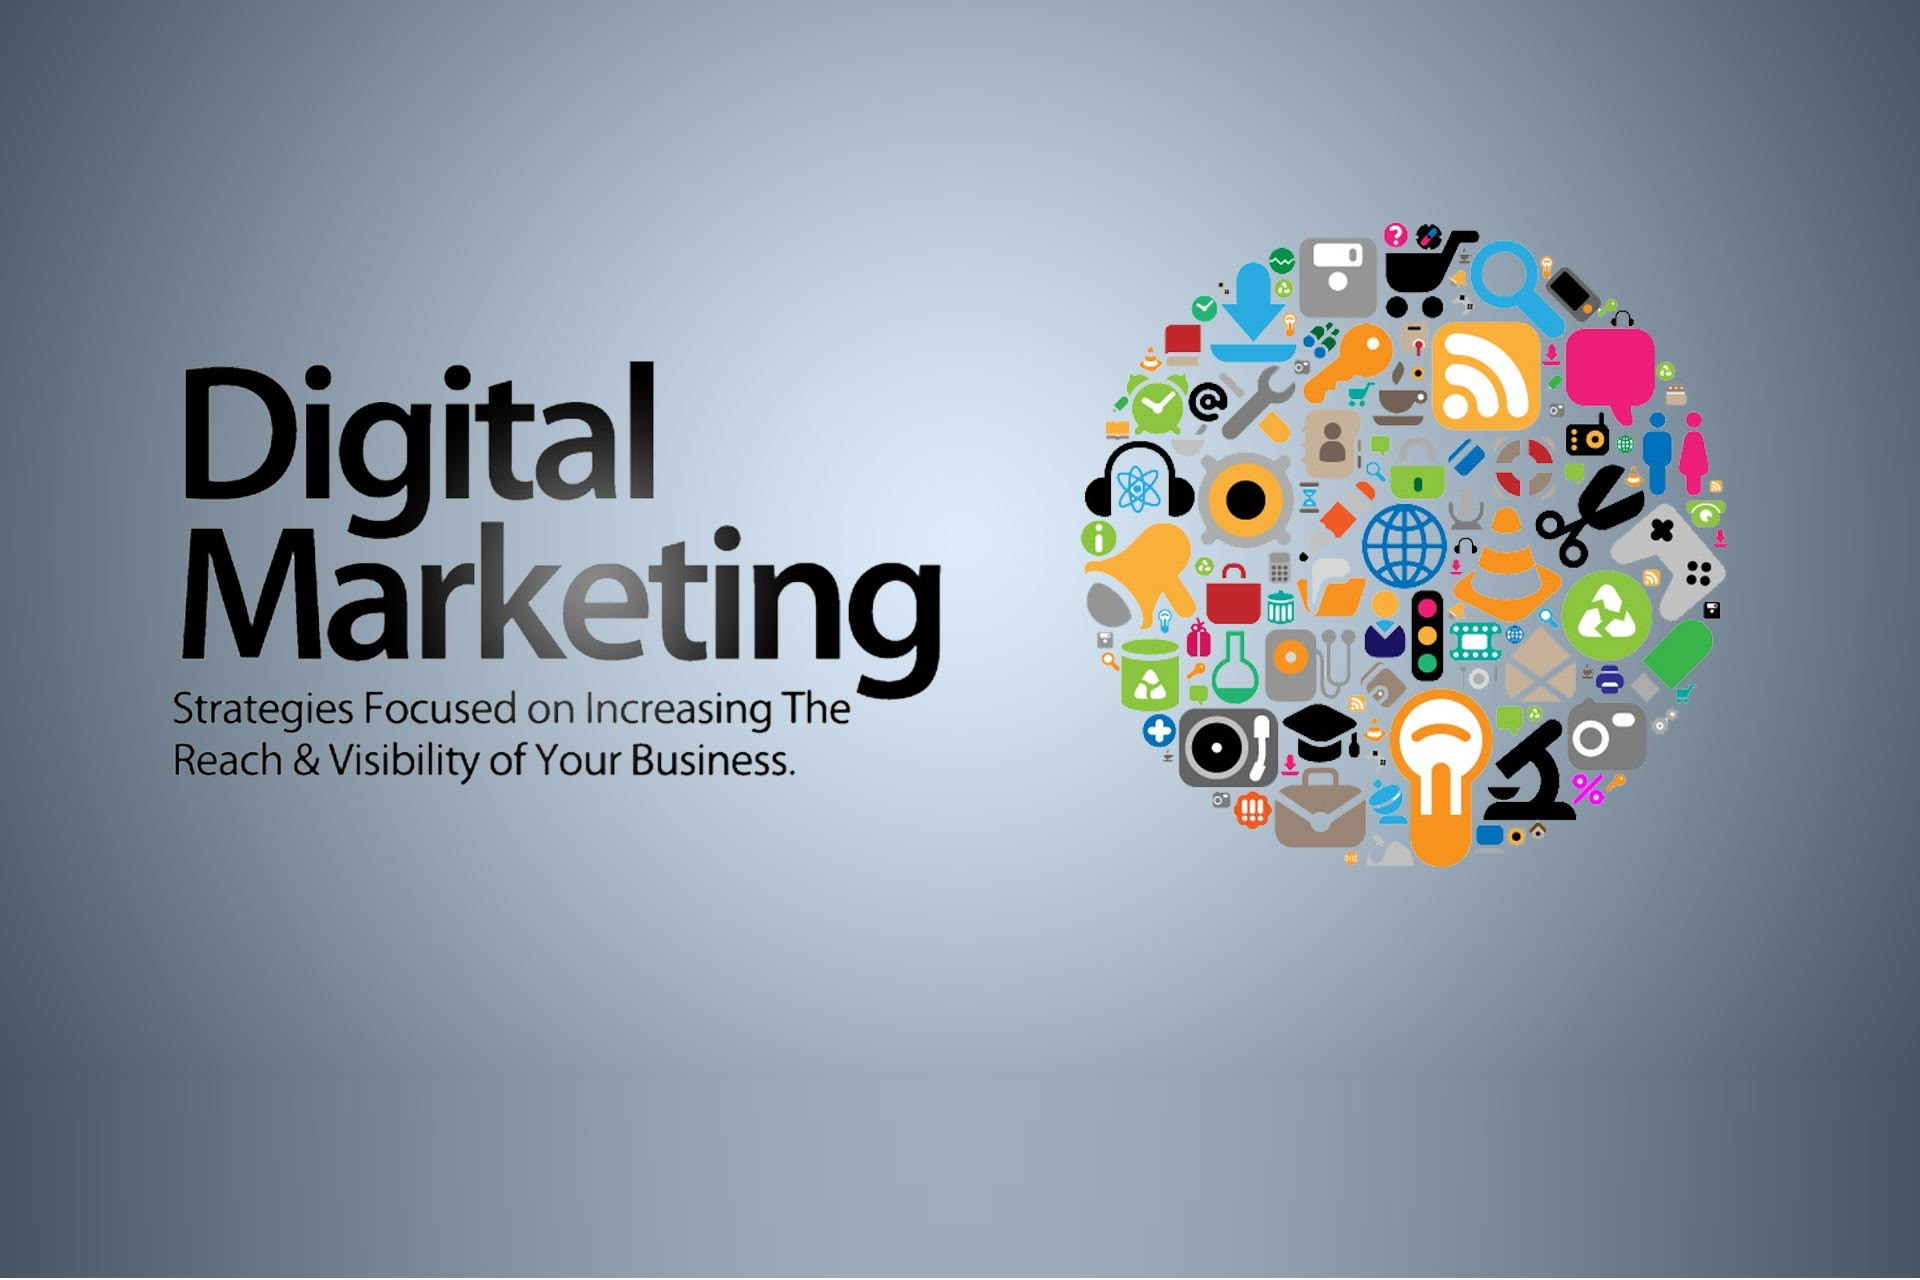 Digital Marketing Services by the Torque Network